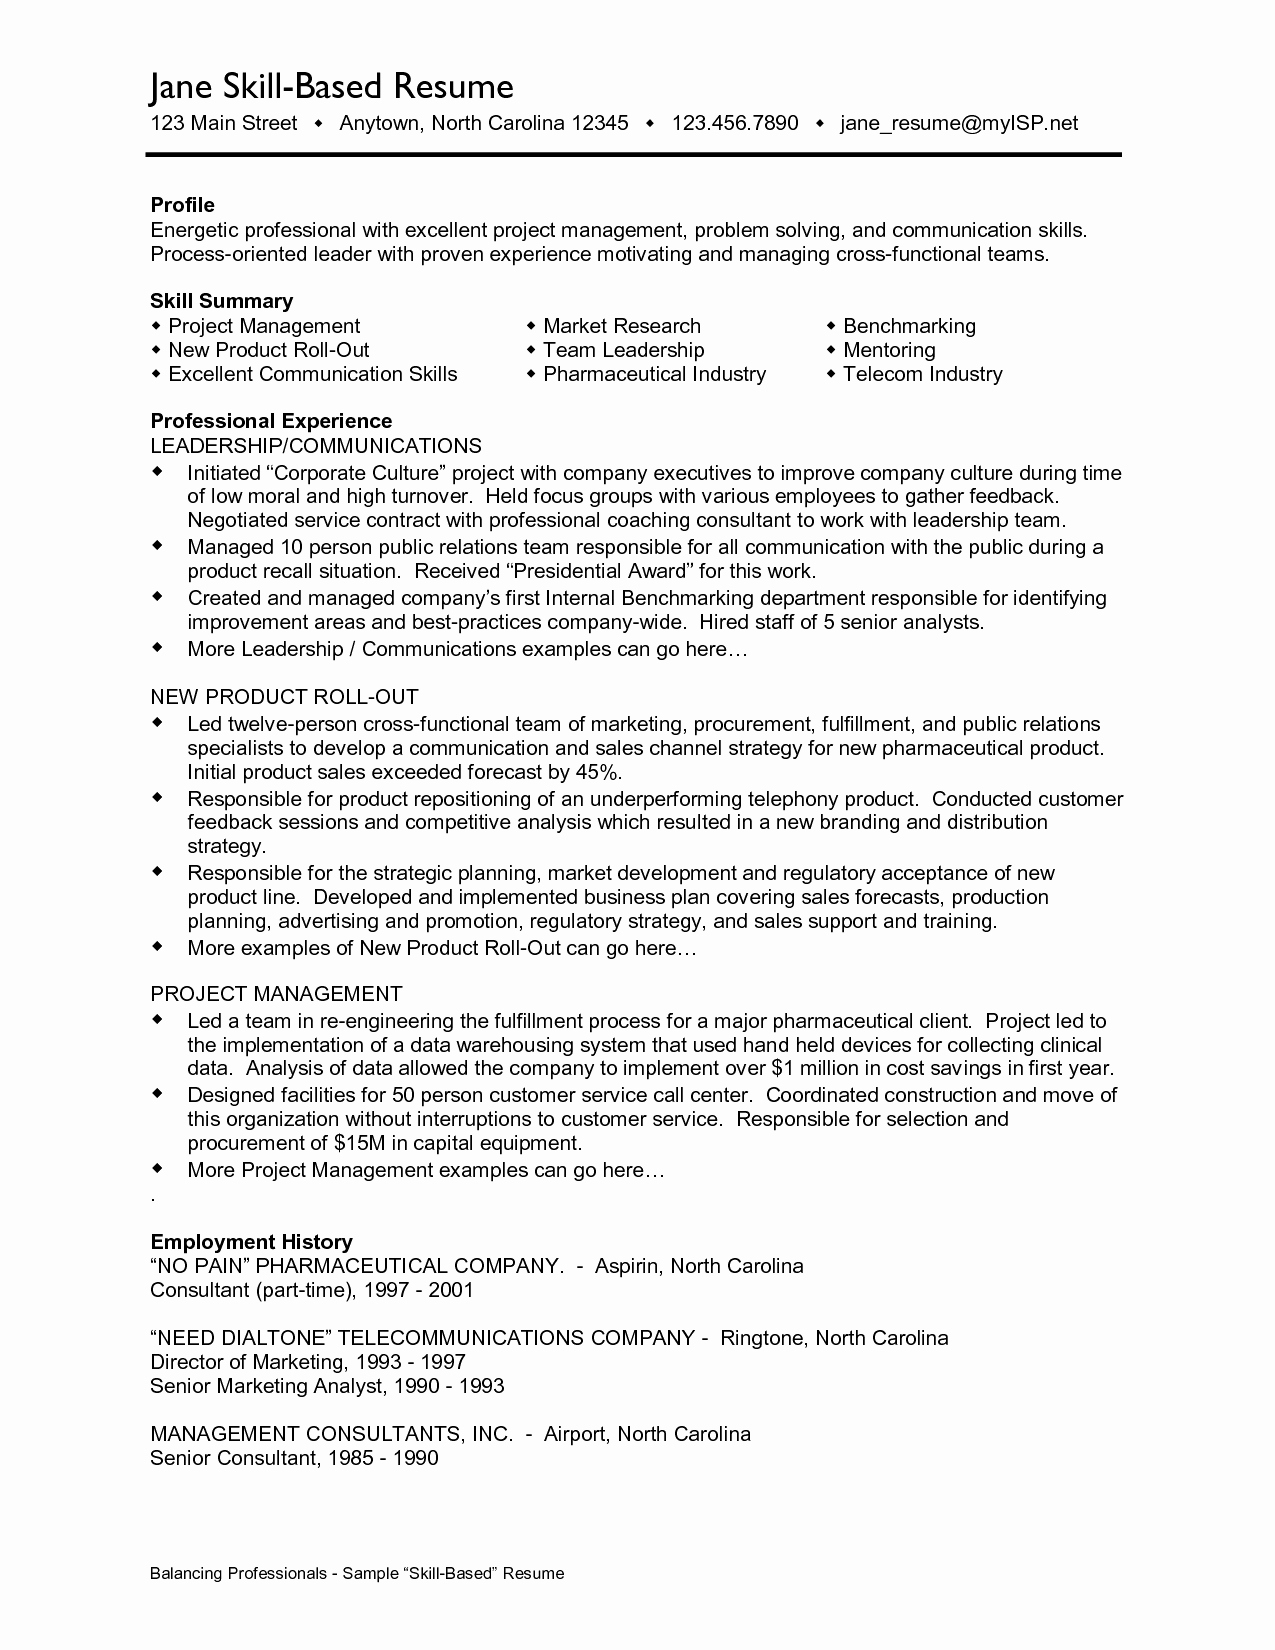 Construction Cover Letter Template - Cover Letter for Construction Management Best Mcdonalds Manager